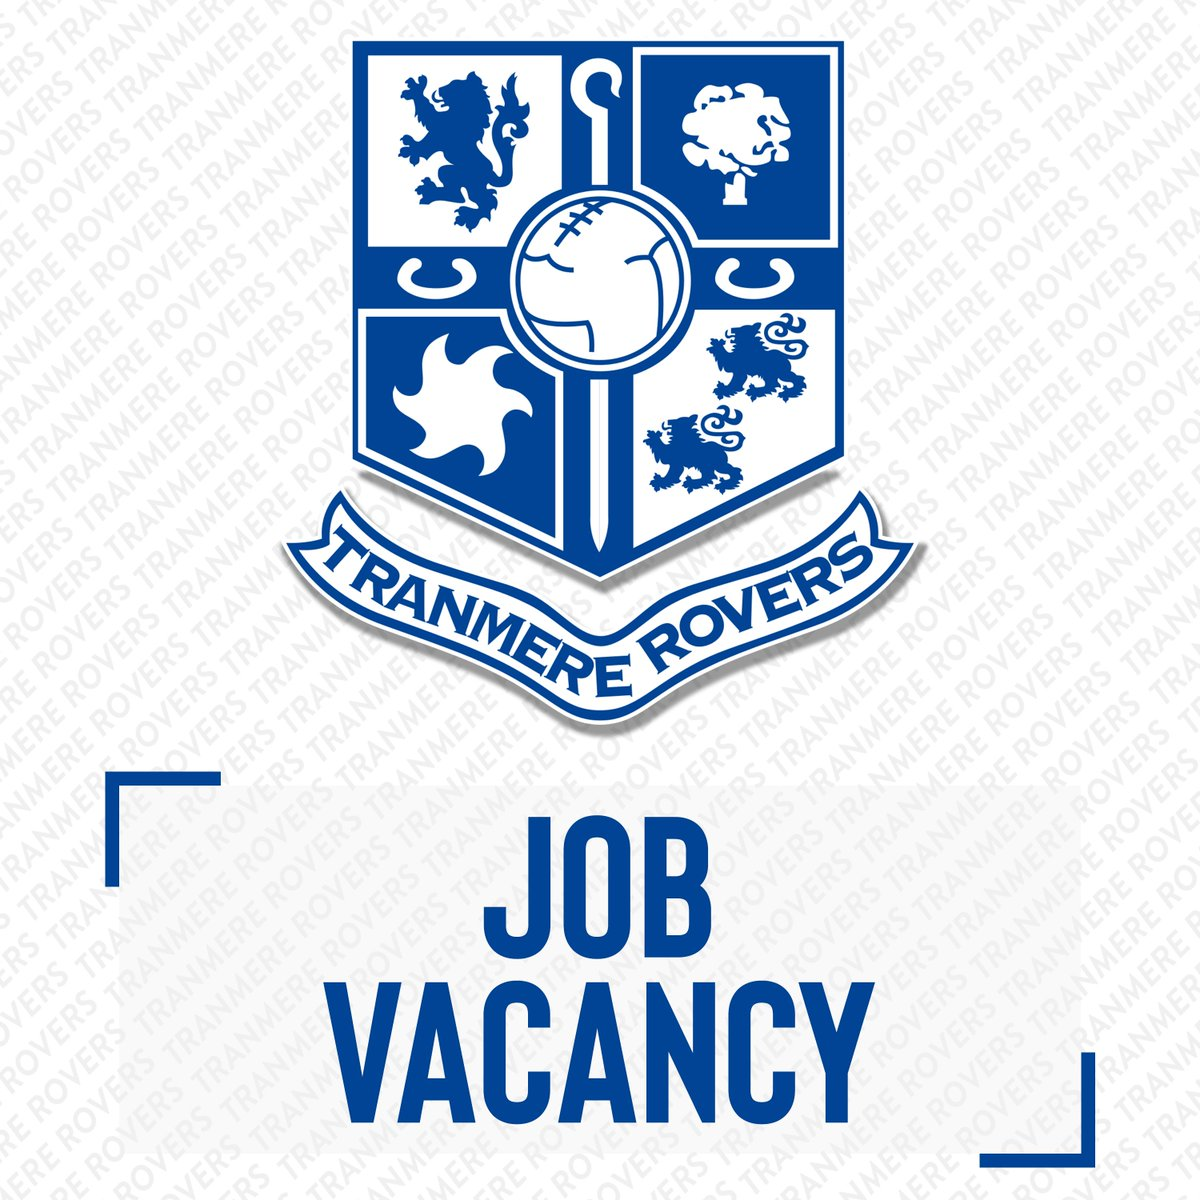 #TRFC are currently recruiting for the following vacancies: 🍾 Event Manager 📚Assistant Tutor and Coach 💬Traineeship Officer Apply here ➡️ bit.ly/2HePSjz #TRFC #SWA